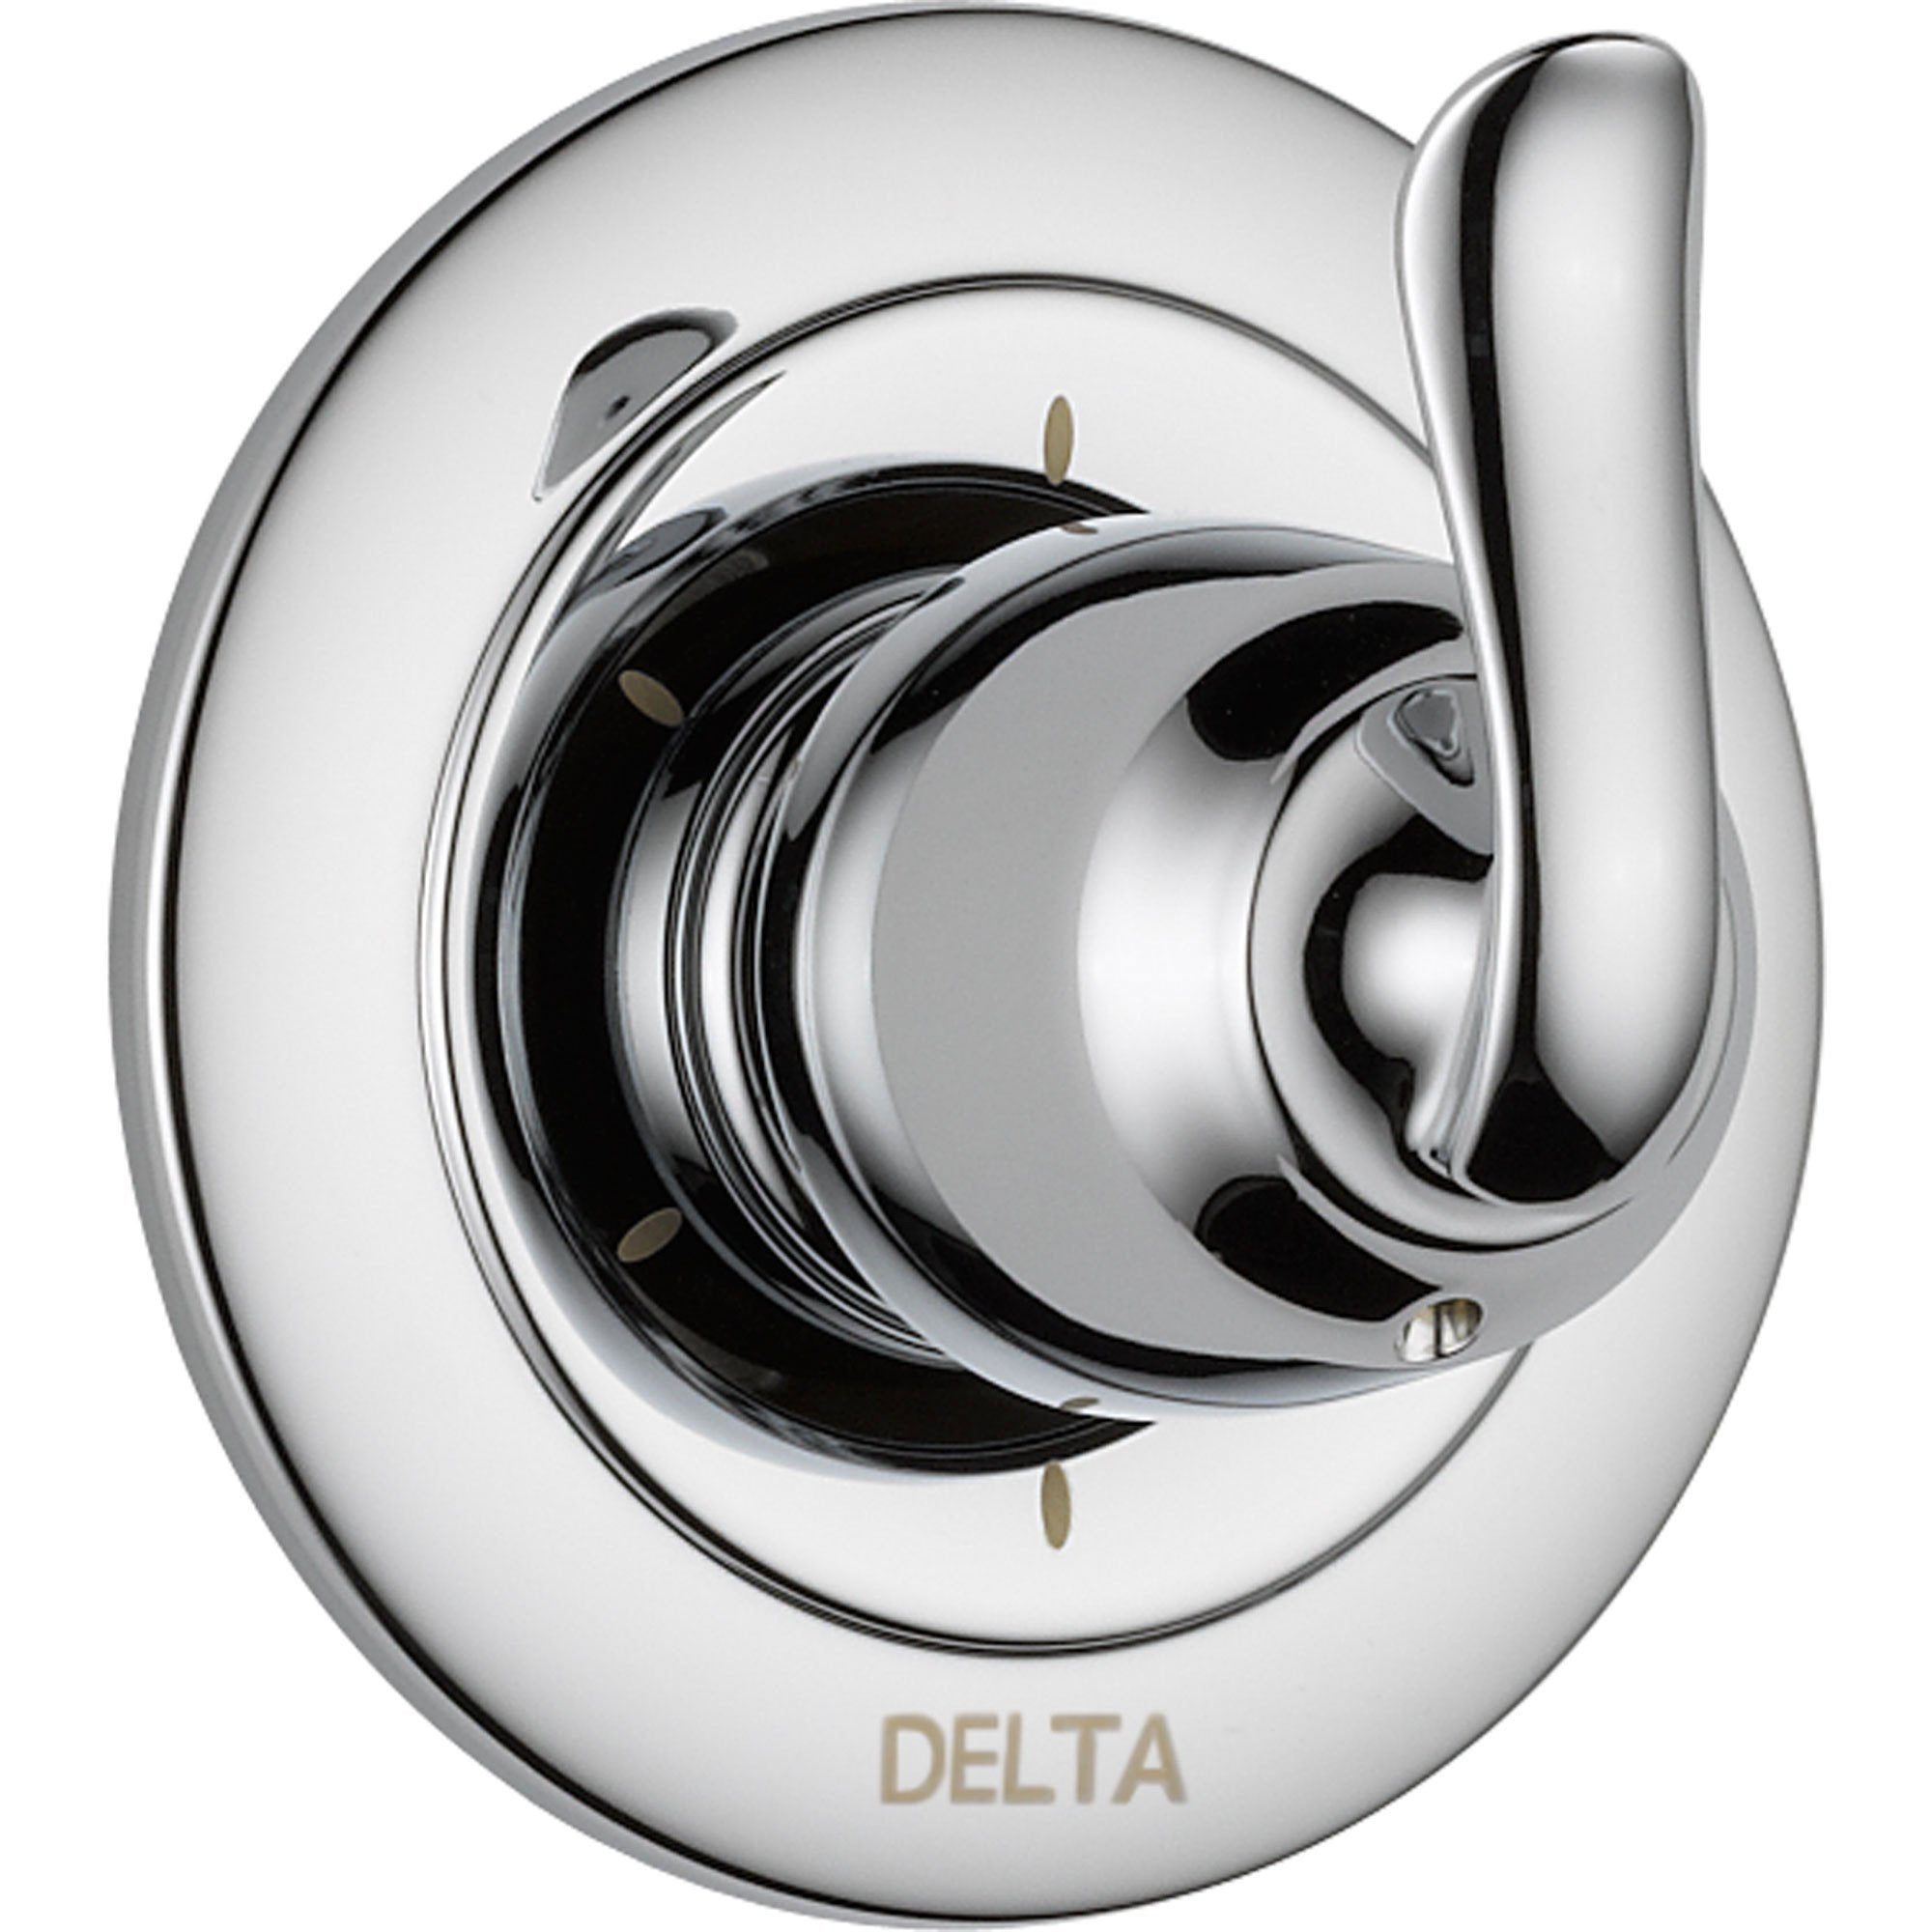 Delta Linden 6-Setting Chrome Single Handle Shower Diverter Trim Kit 555684